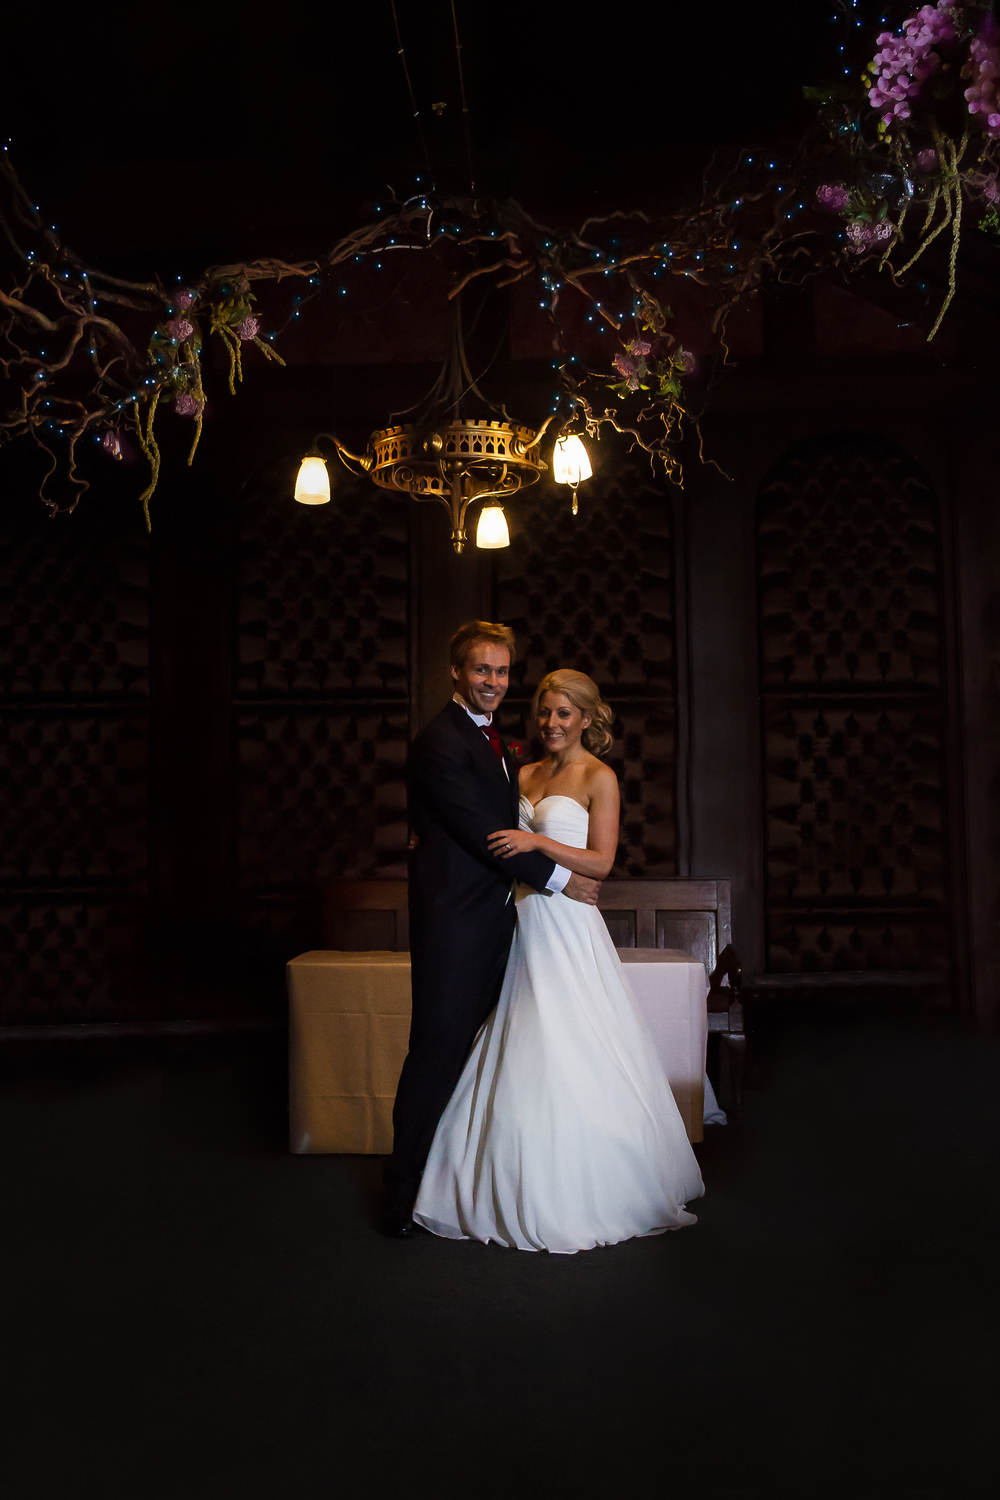 Katie & Richard_wedding_thebelleepoque_knustford_sjwphotos_weddingphotographer_portraits--190.jpg